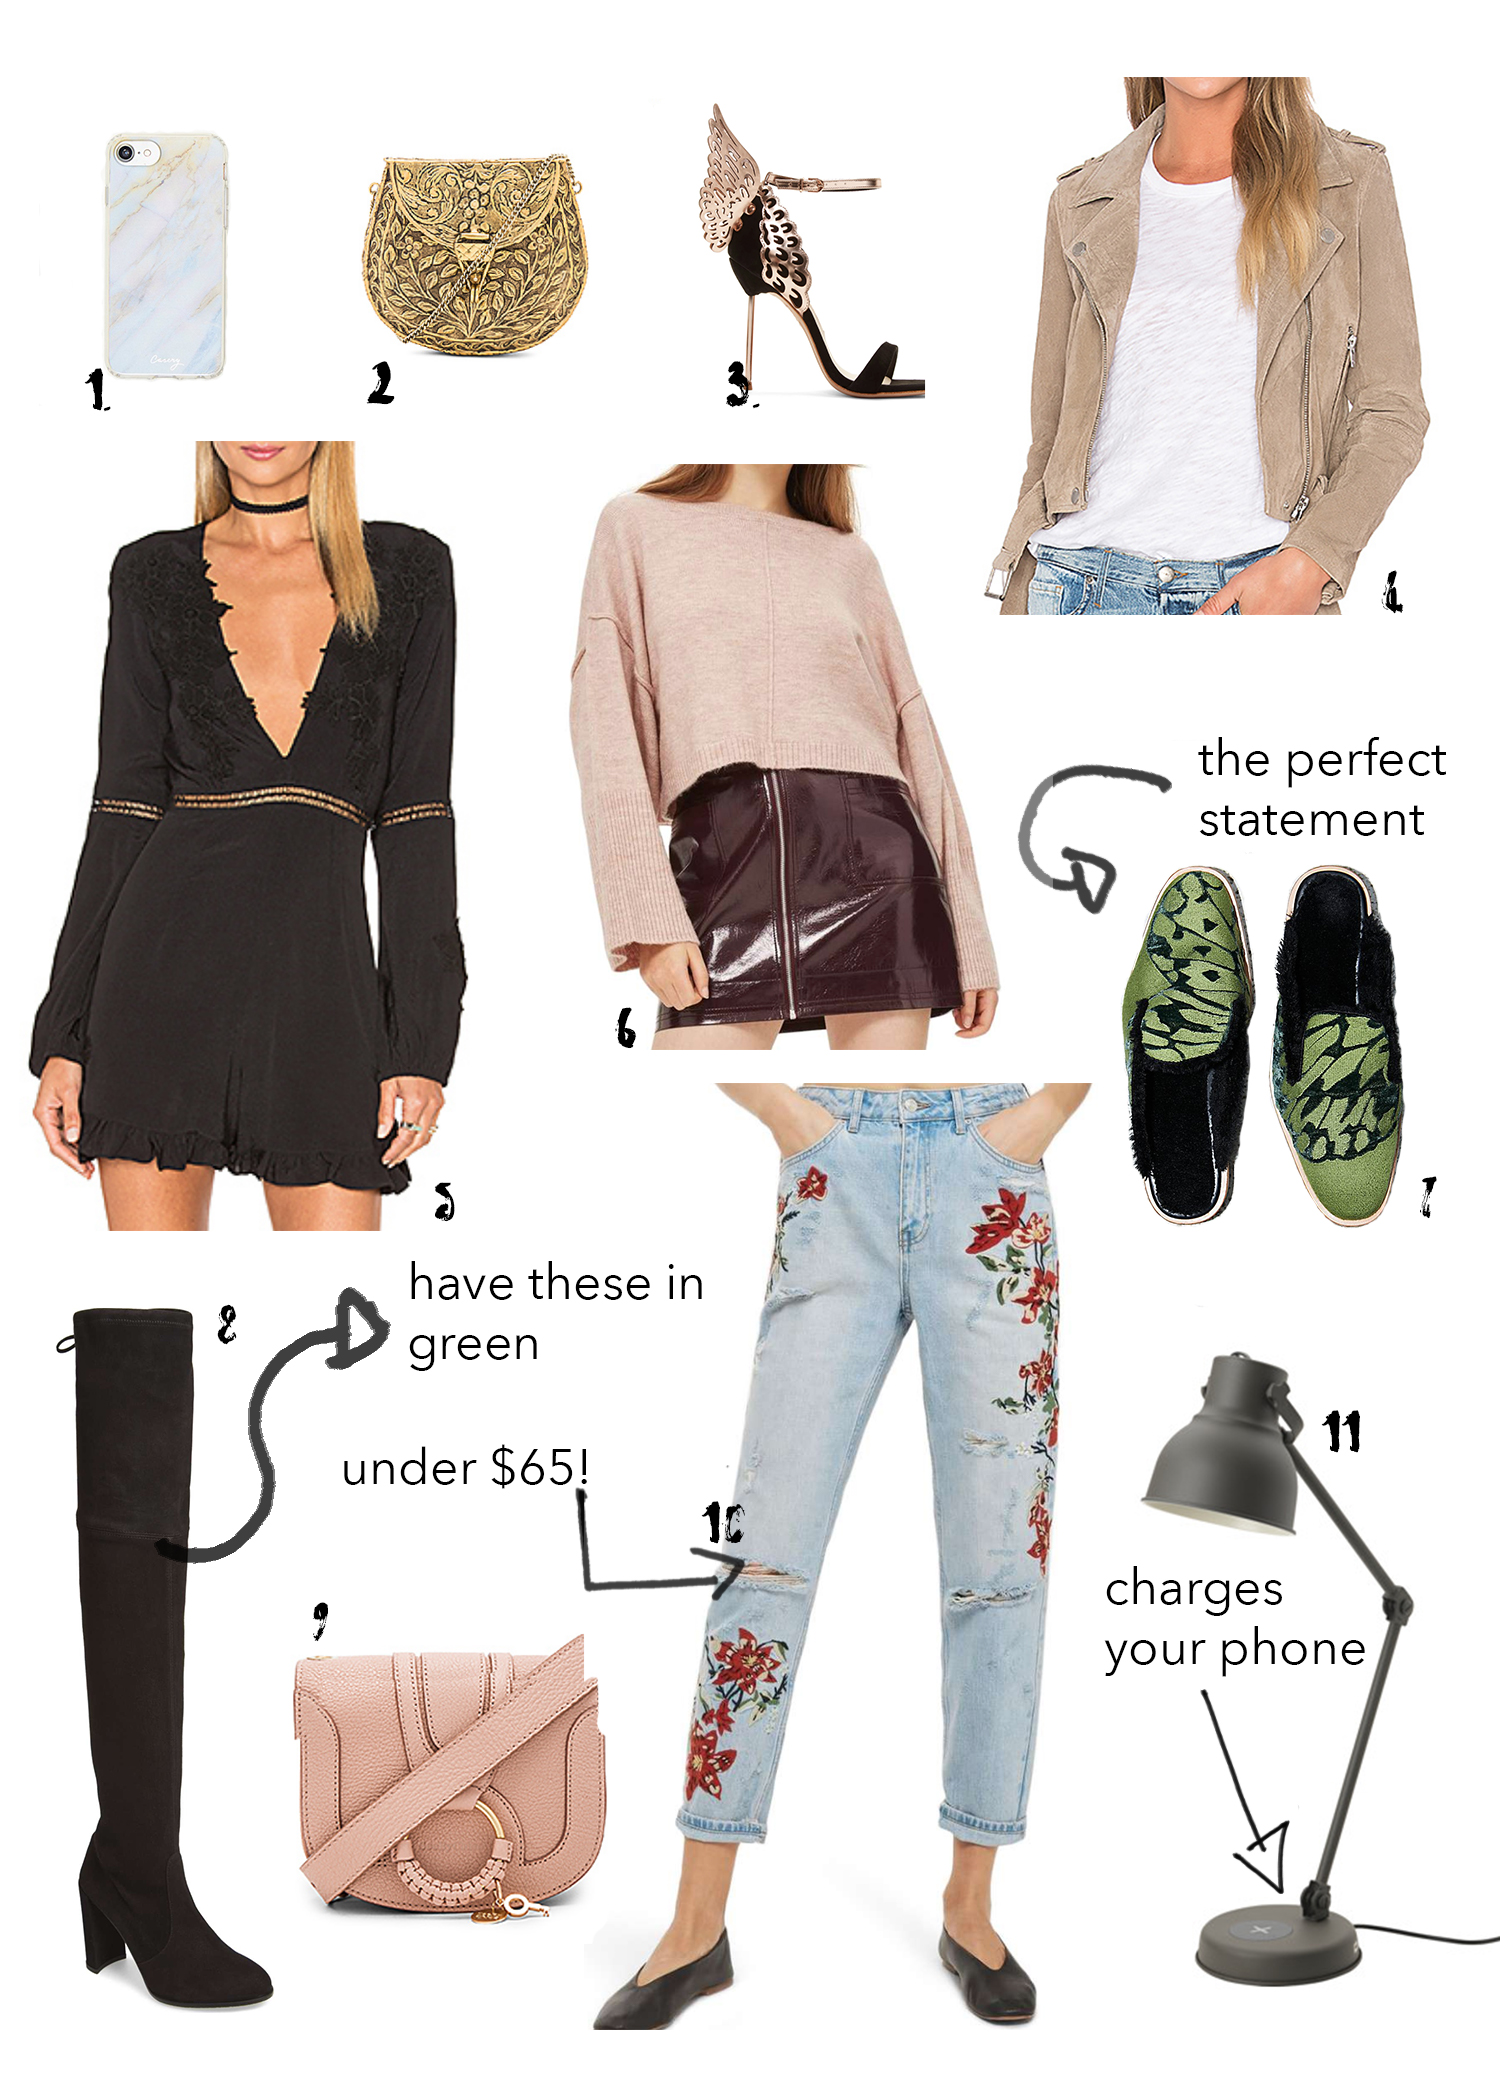 1. Free People Phone Case  //  2. St. Xavier Clutch  //  3. Sophia Webster Heels  //  4. Blank NYC Jacket  //  5. For Love & Lemons Romper (on sale!)  //  6. TOPSHOP Sweater  //  7. Free People Slides  //  8. Stuart Weitzman Boots  //  9. Chloe Crossbody  //  10. TOPSHOP jeans (on sale!)  //  11. IKEA Lamp